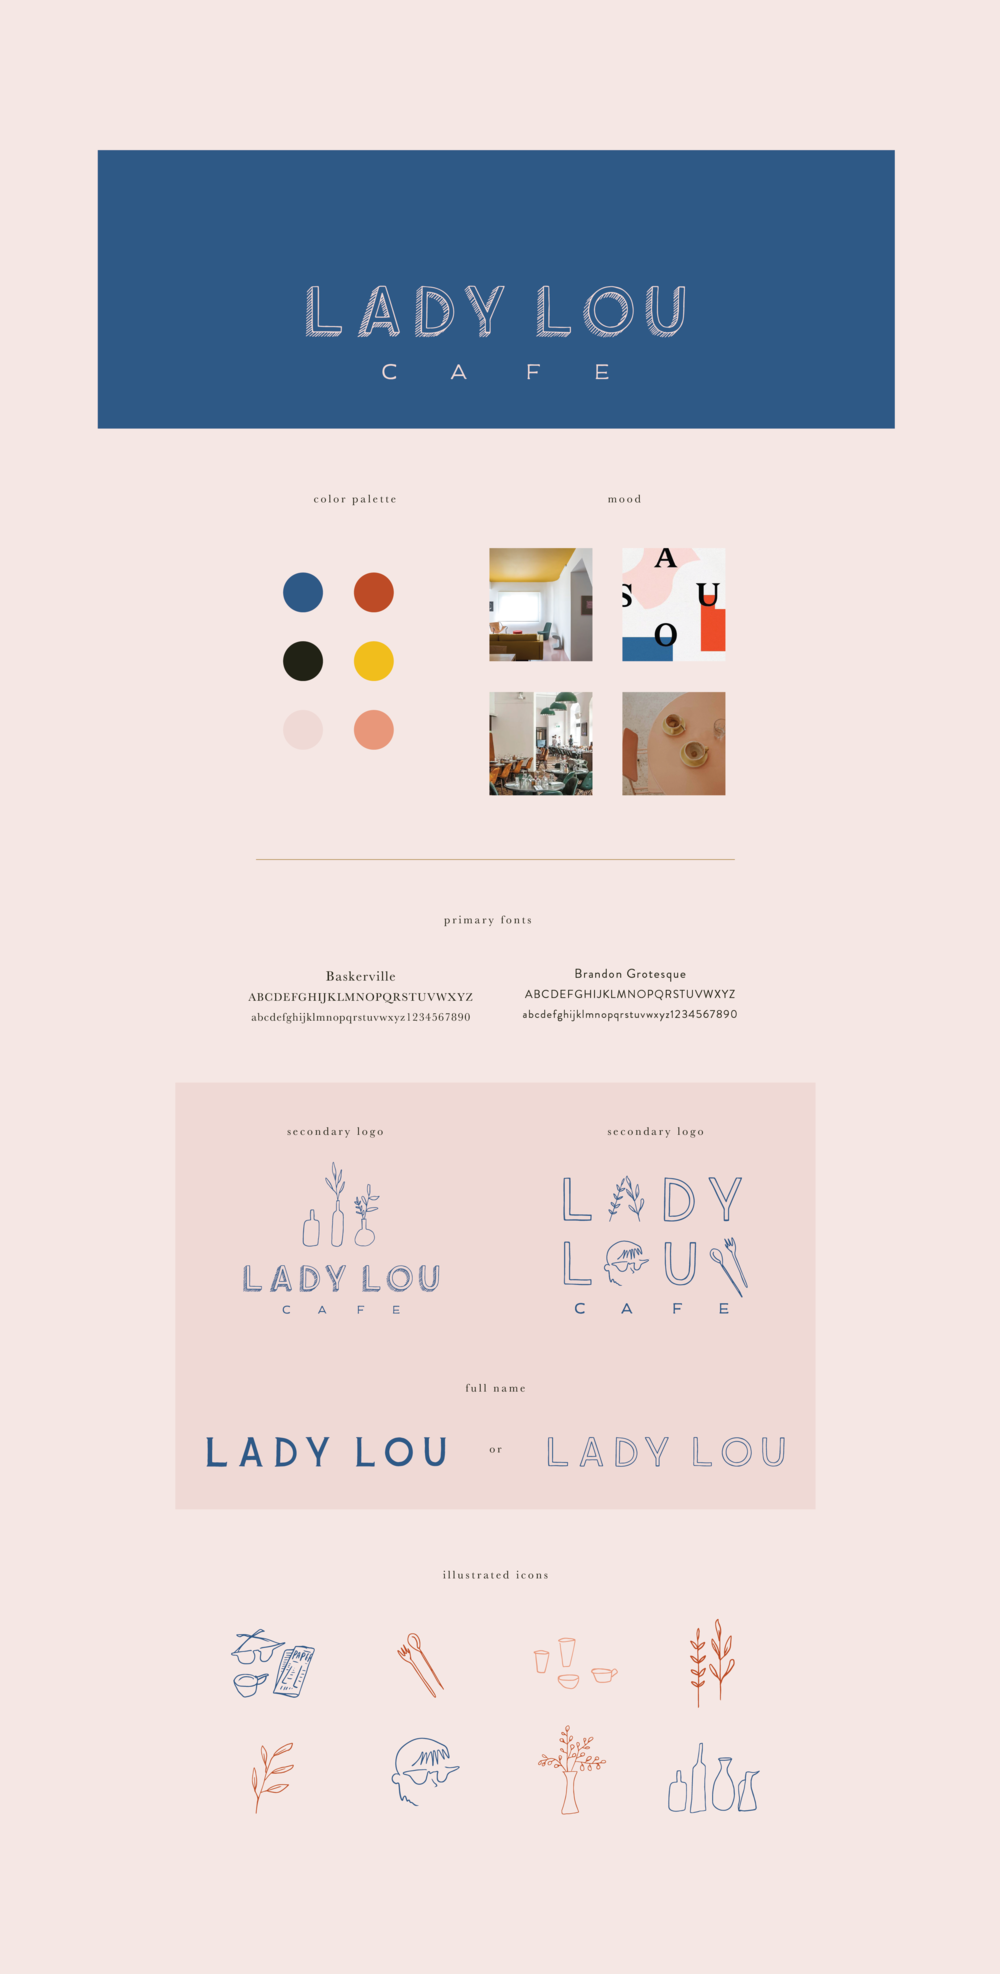 Lady Lou Brand Identity Guide